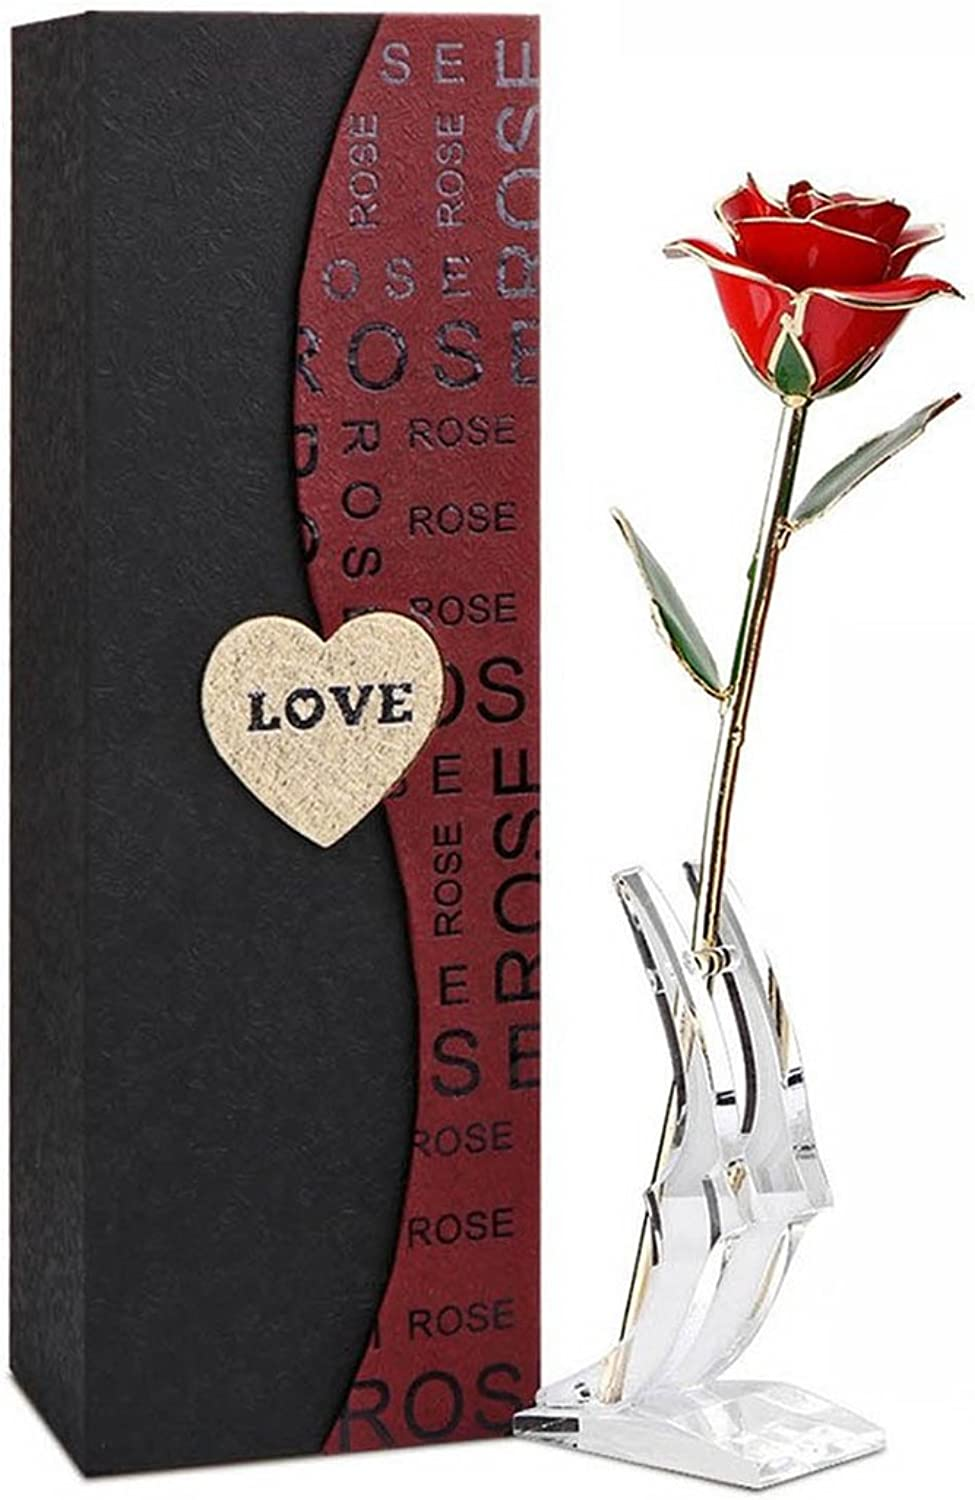 Artificial Flower Gift, Coxeer Long Stem Fake Romantic pink with Stand Holder and Gift Box